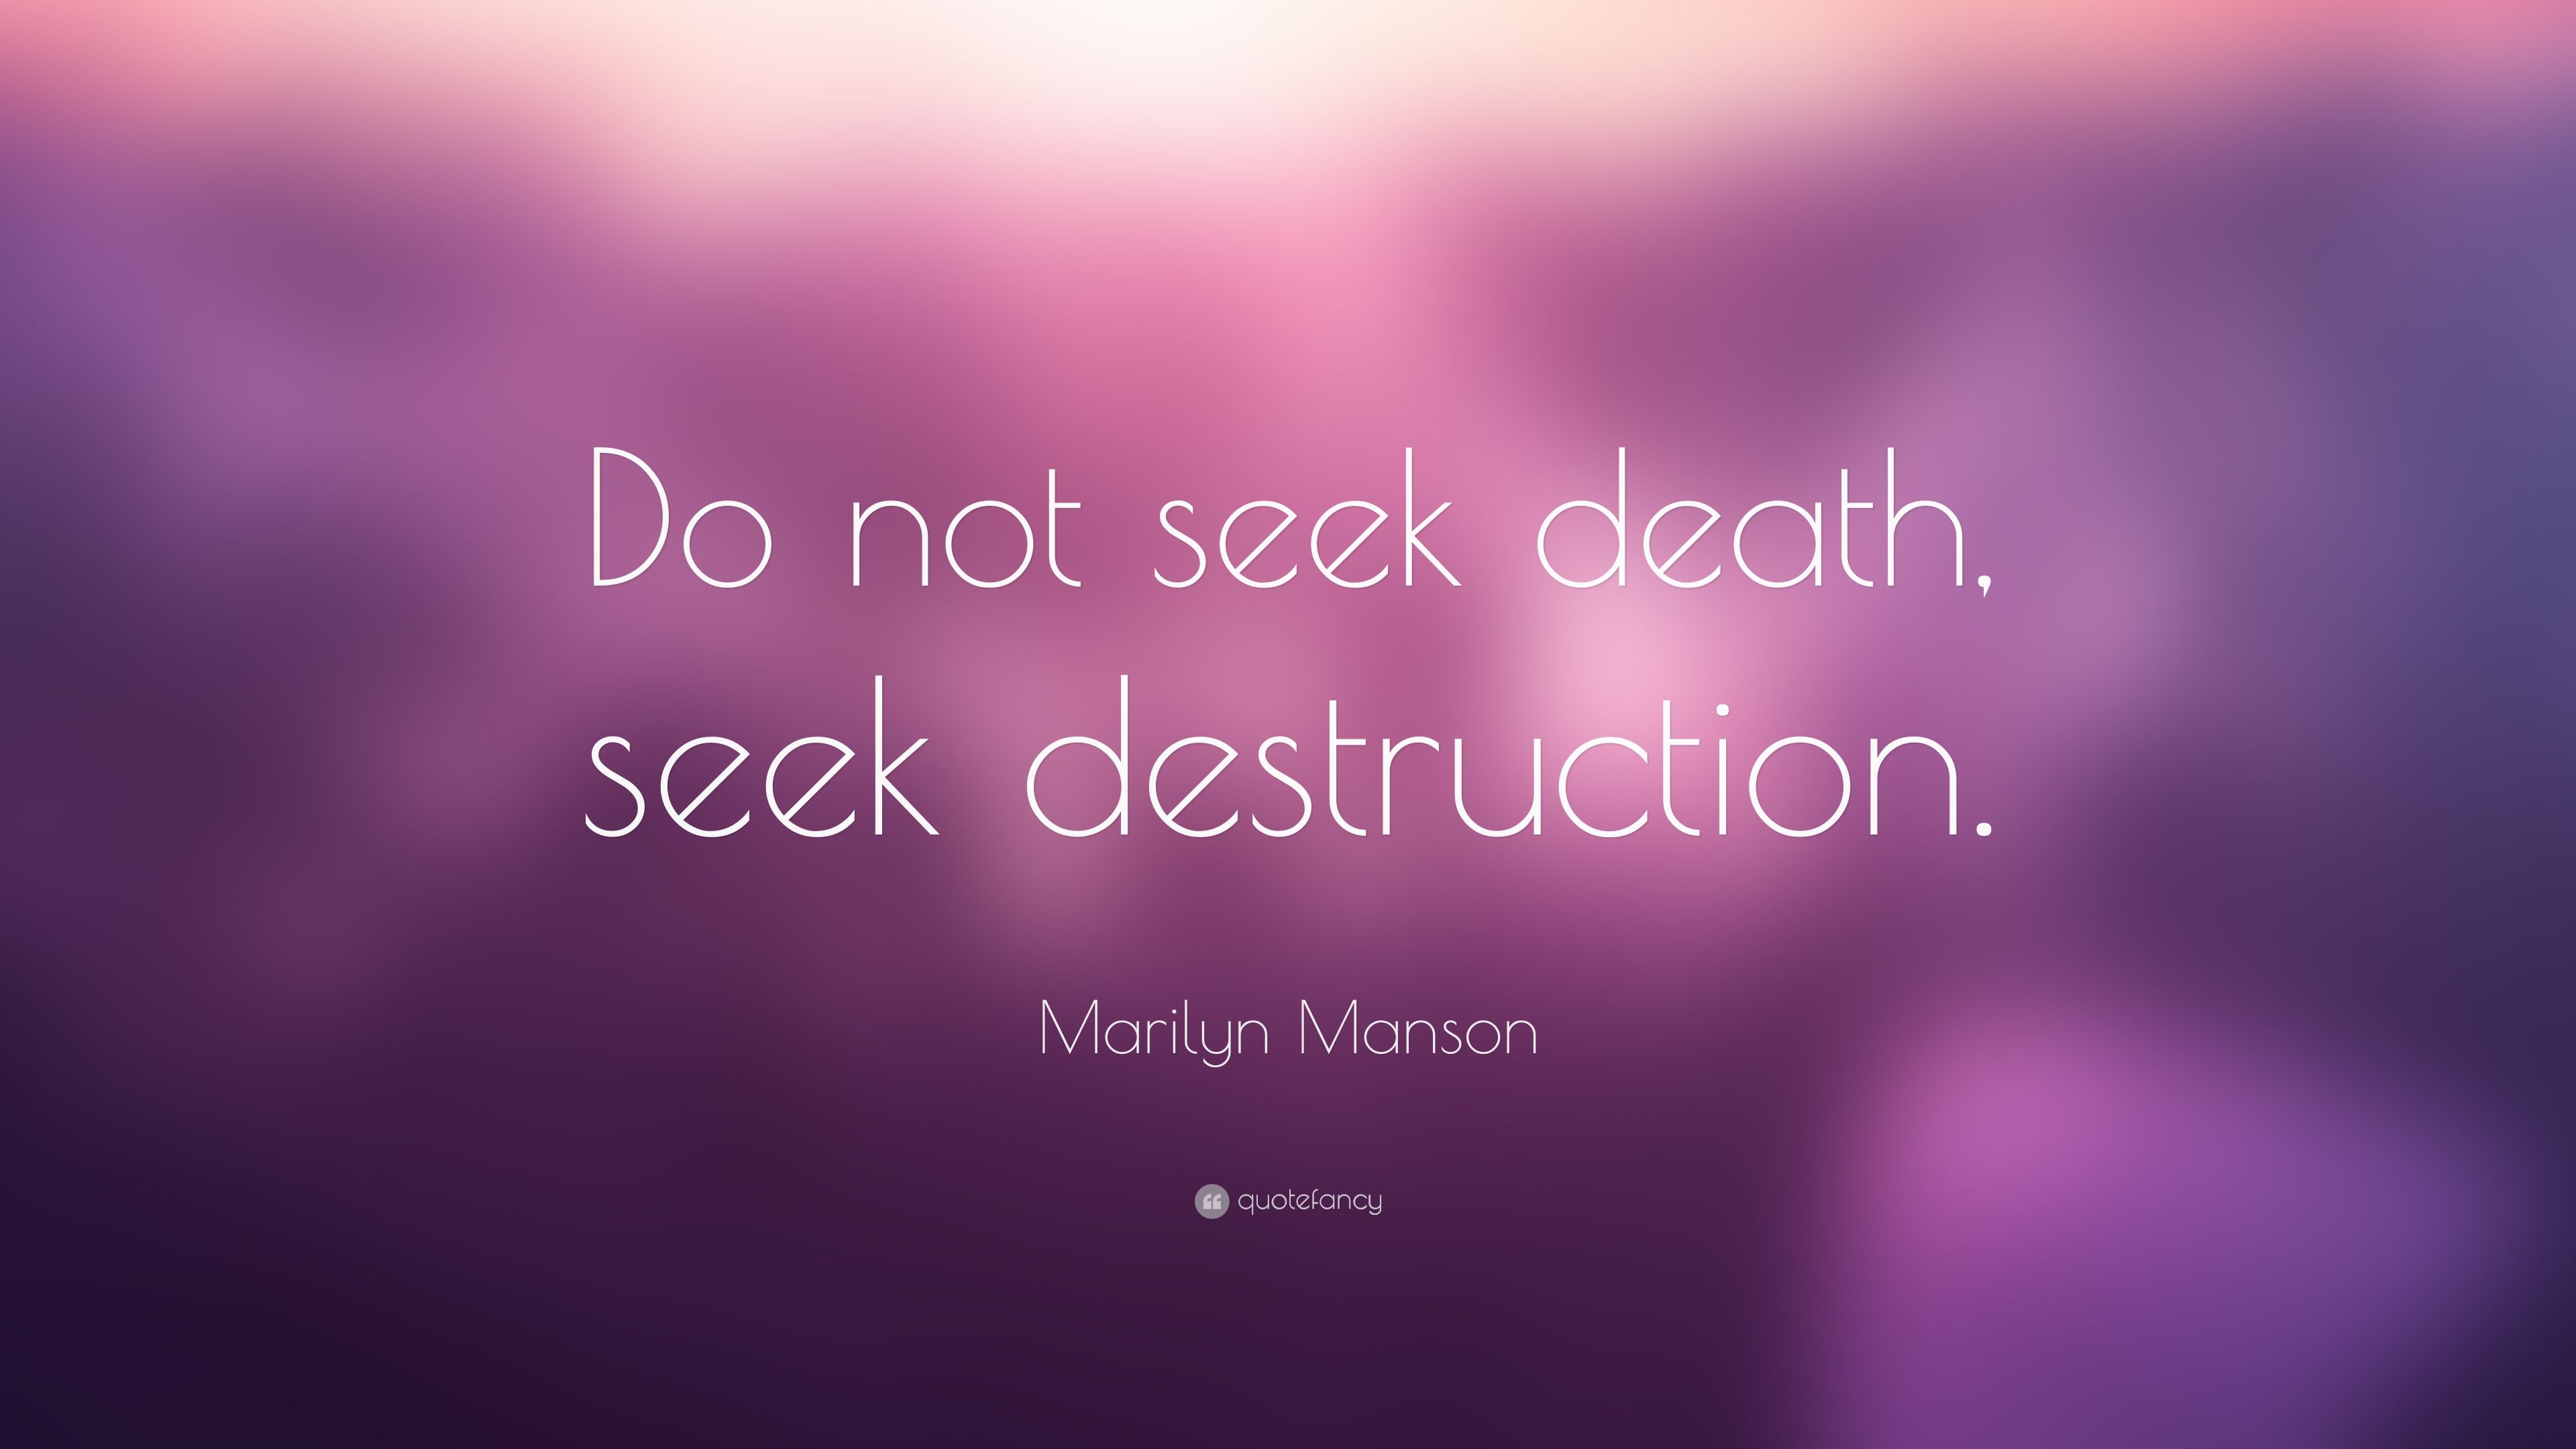 Marilyn Manson Quote: U201cDo Not Seek Death, Seek Destruction.u201d